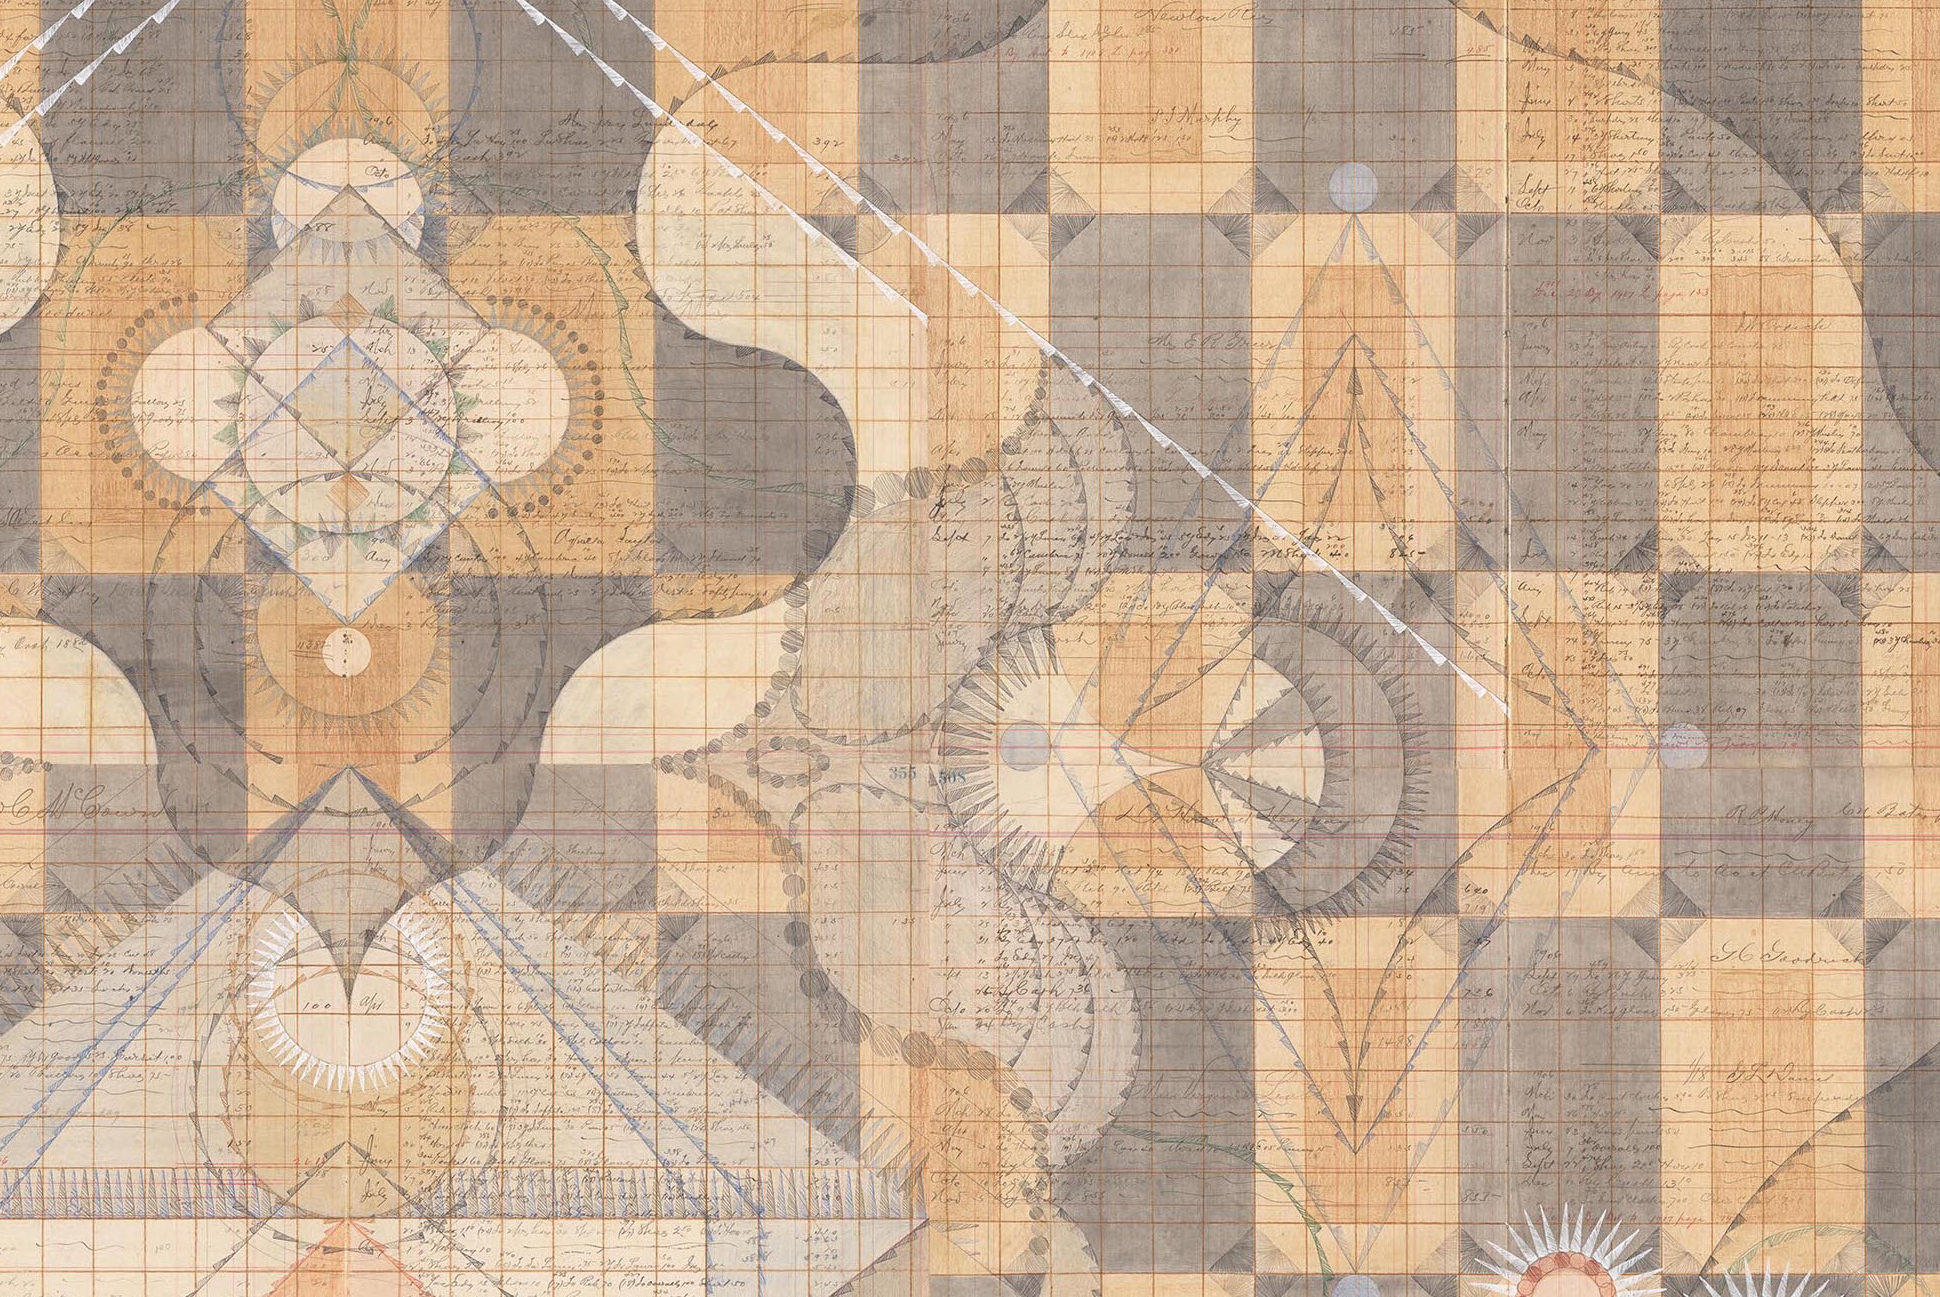 DETAIL of  Source. Colored Pencil and Graphite on Antique Ledger Book Pages. 71 1/2 x 68 1/2